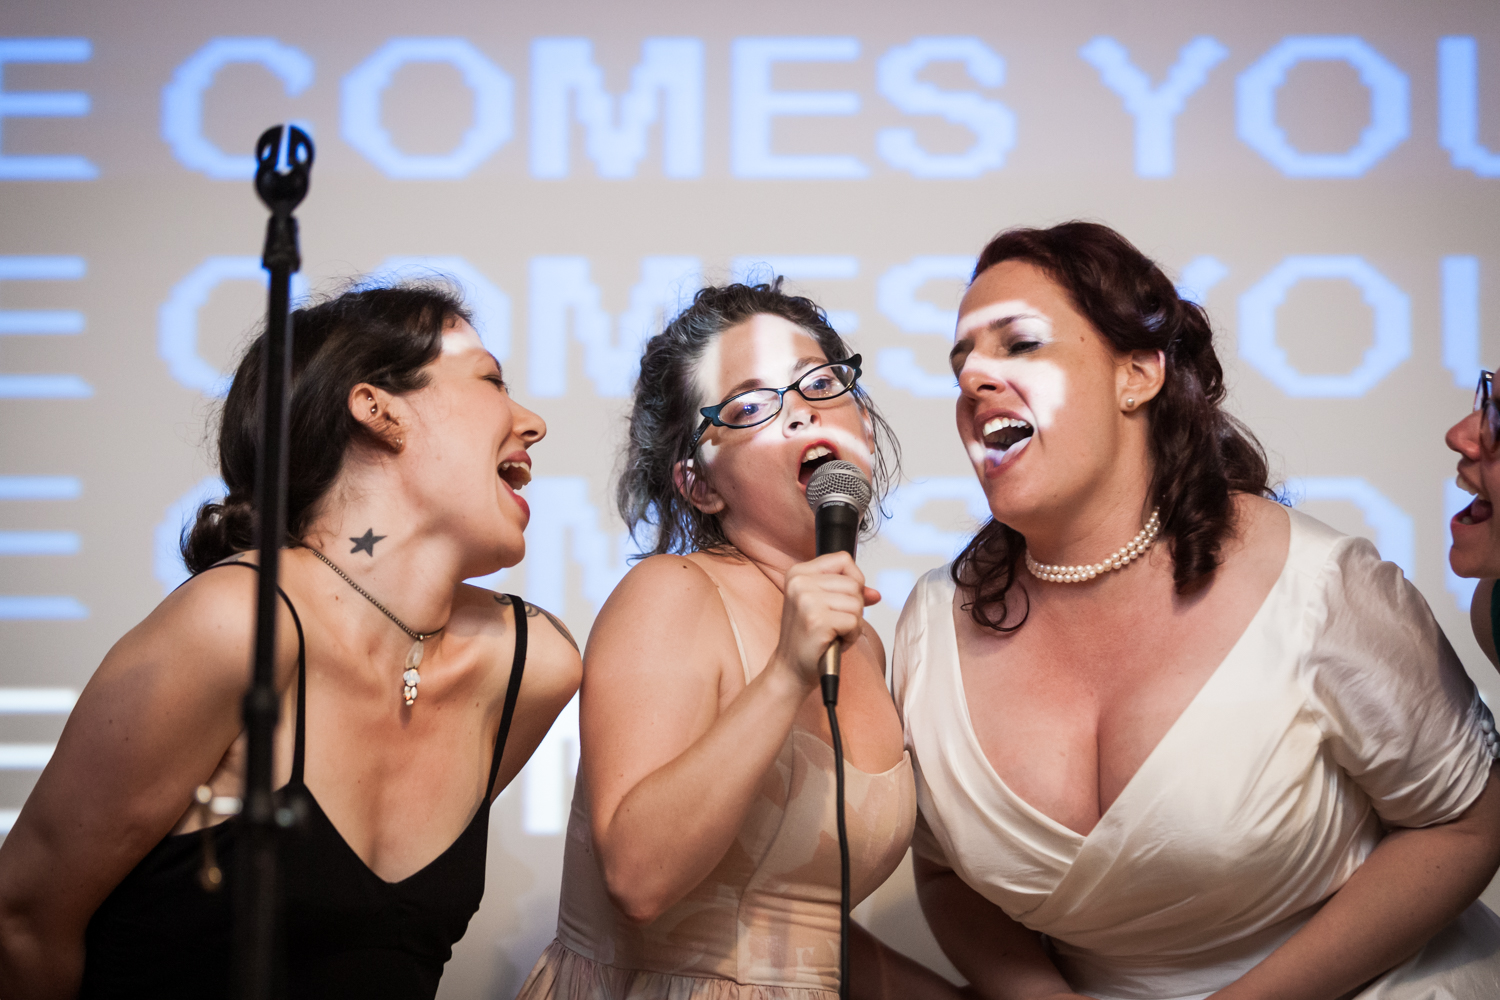 Bride singing karaoke with two female guests at a DUMBO wedding